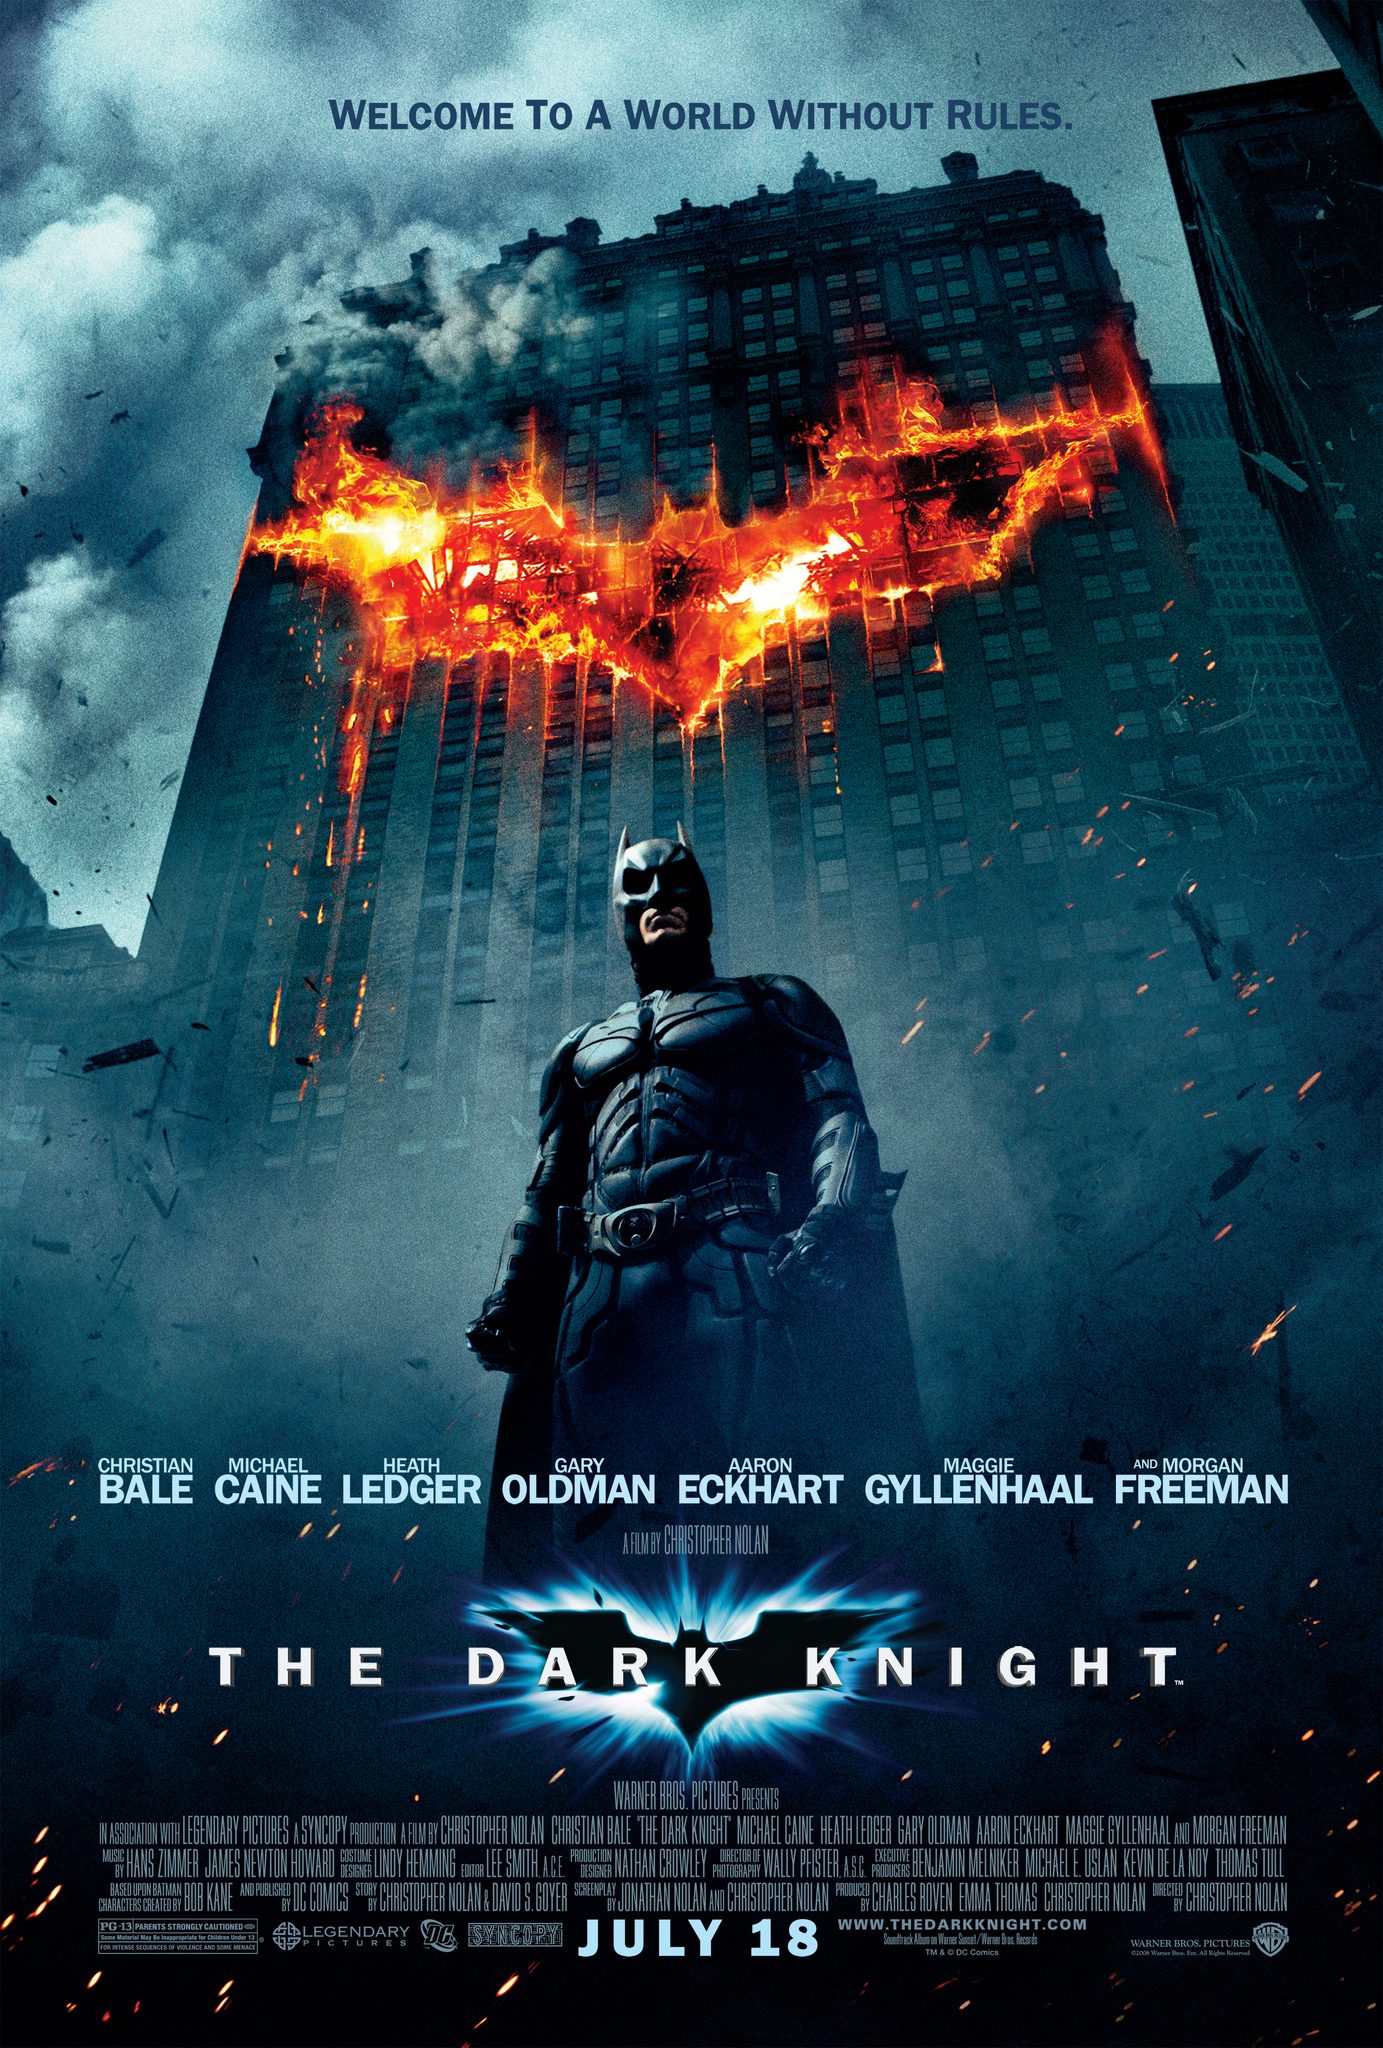 The Dark Knight (2008) Technical Specifications